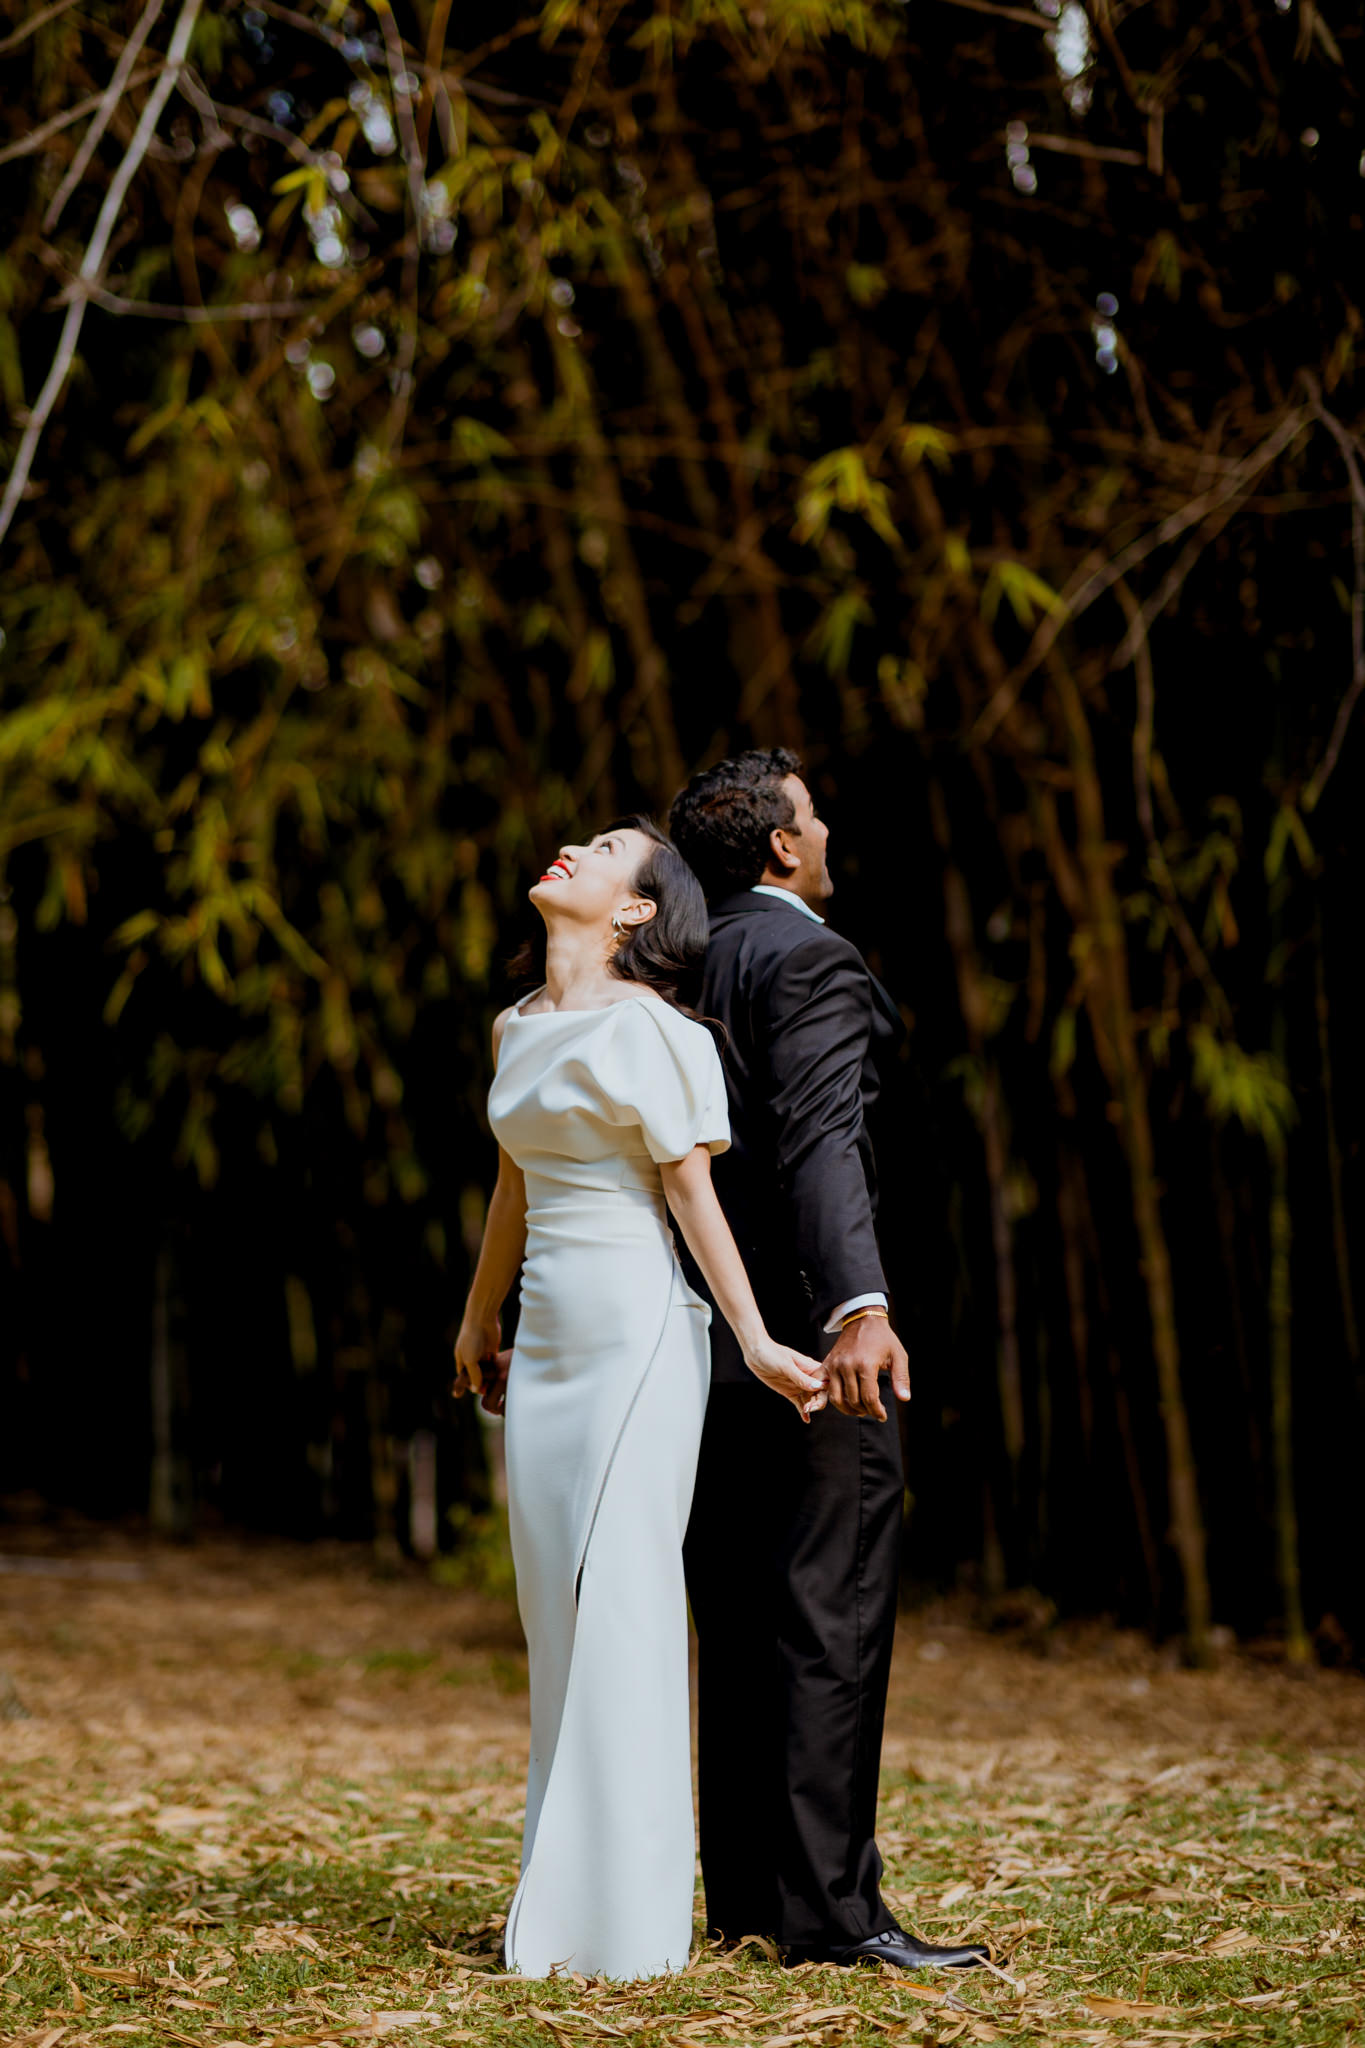 Bride and groom practicing first dance in front of bamboo trees